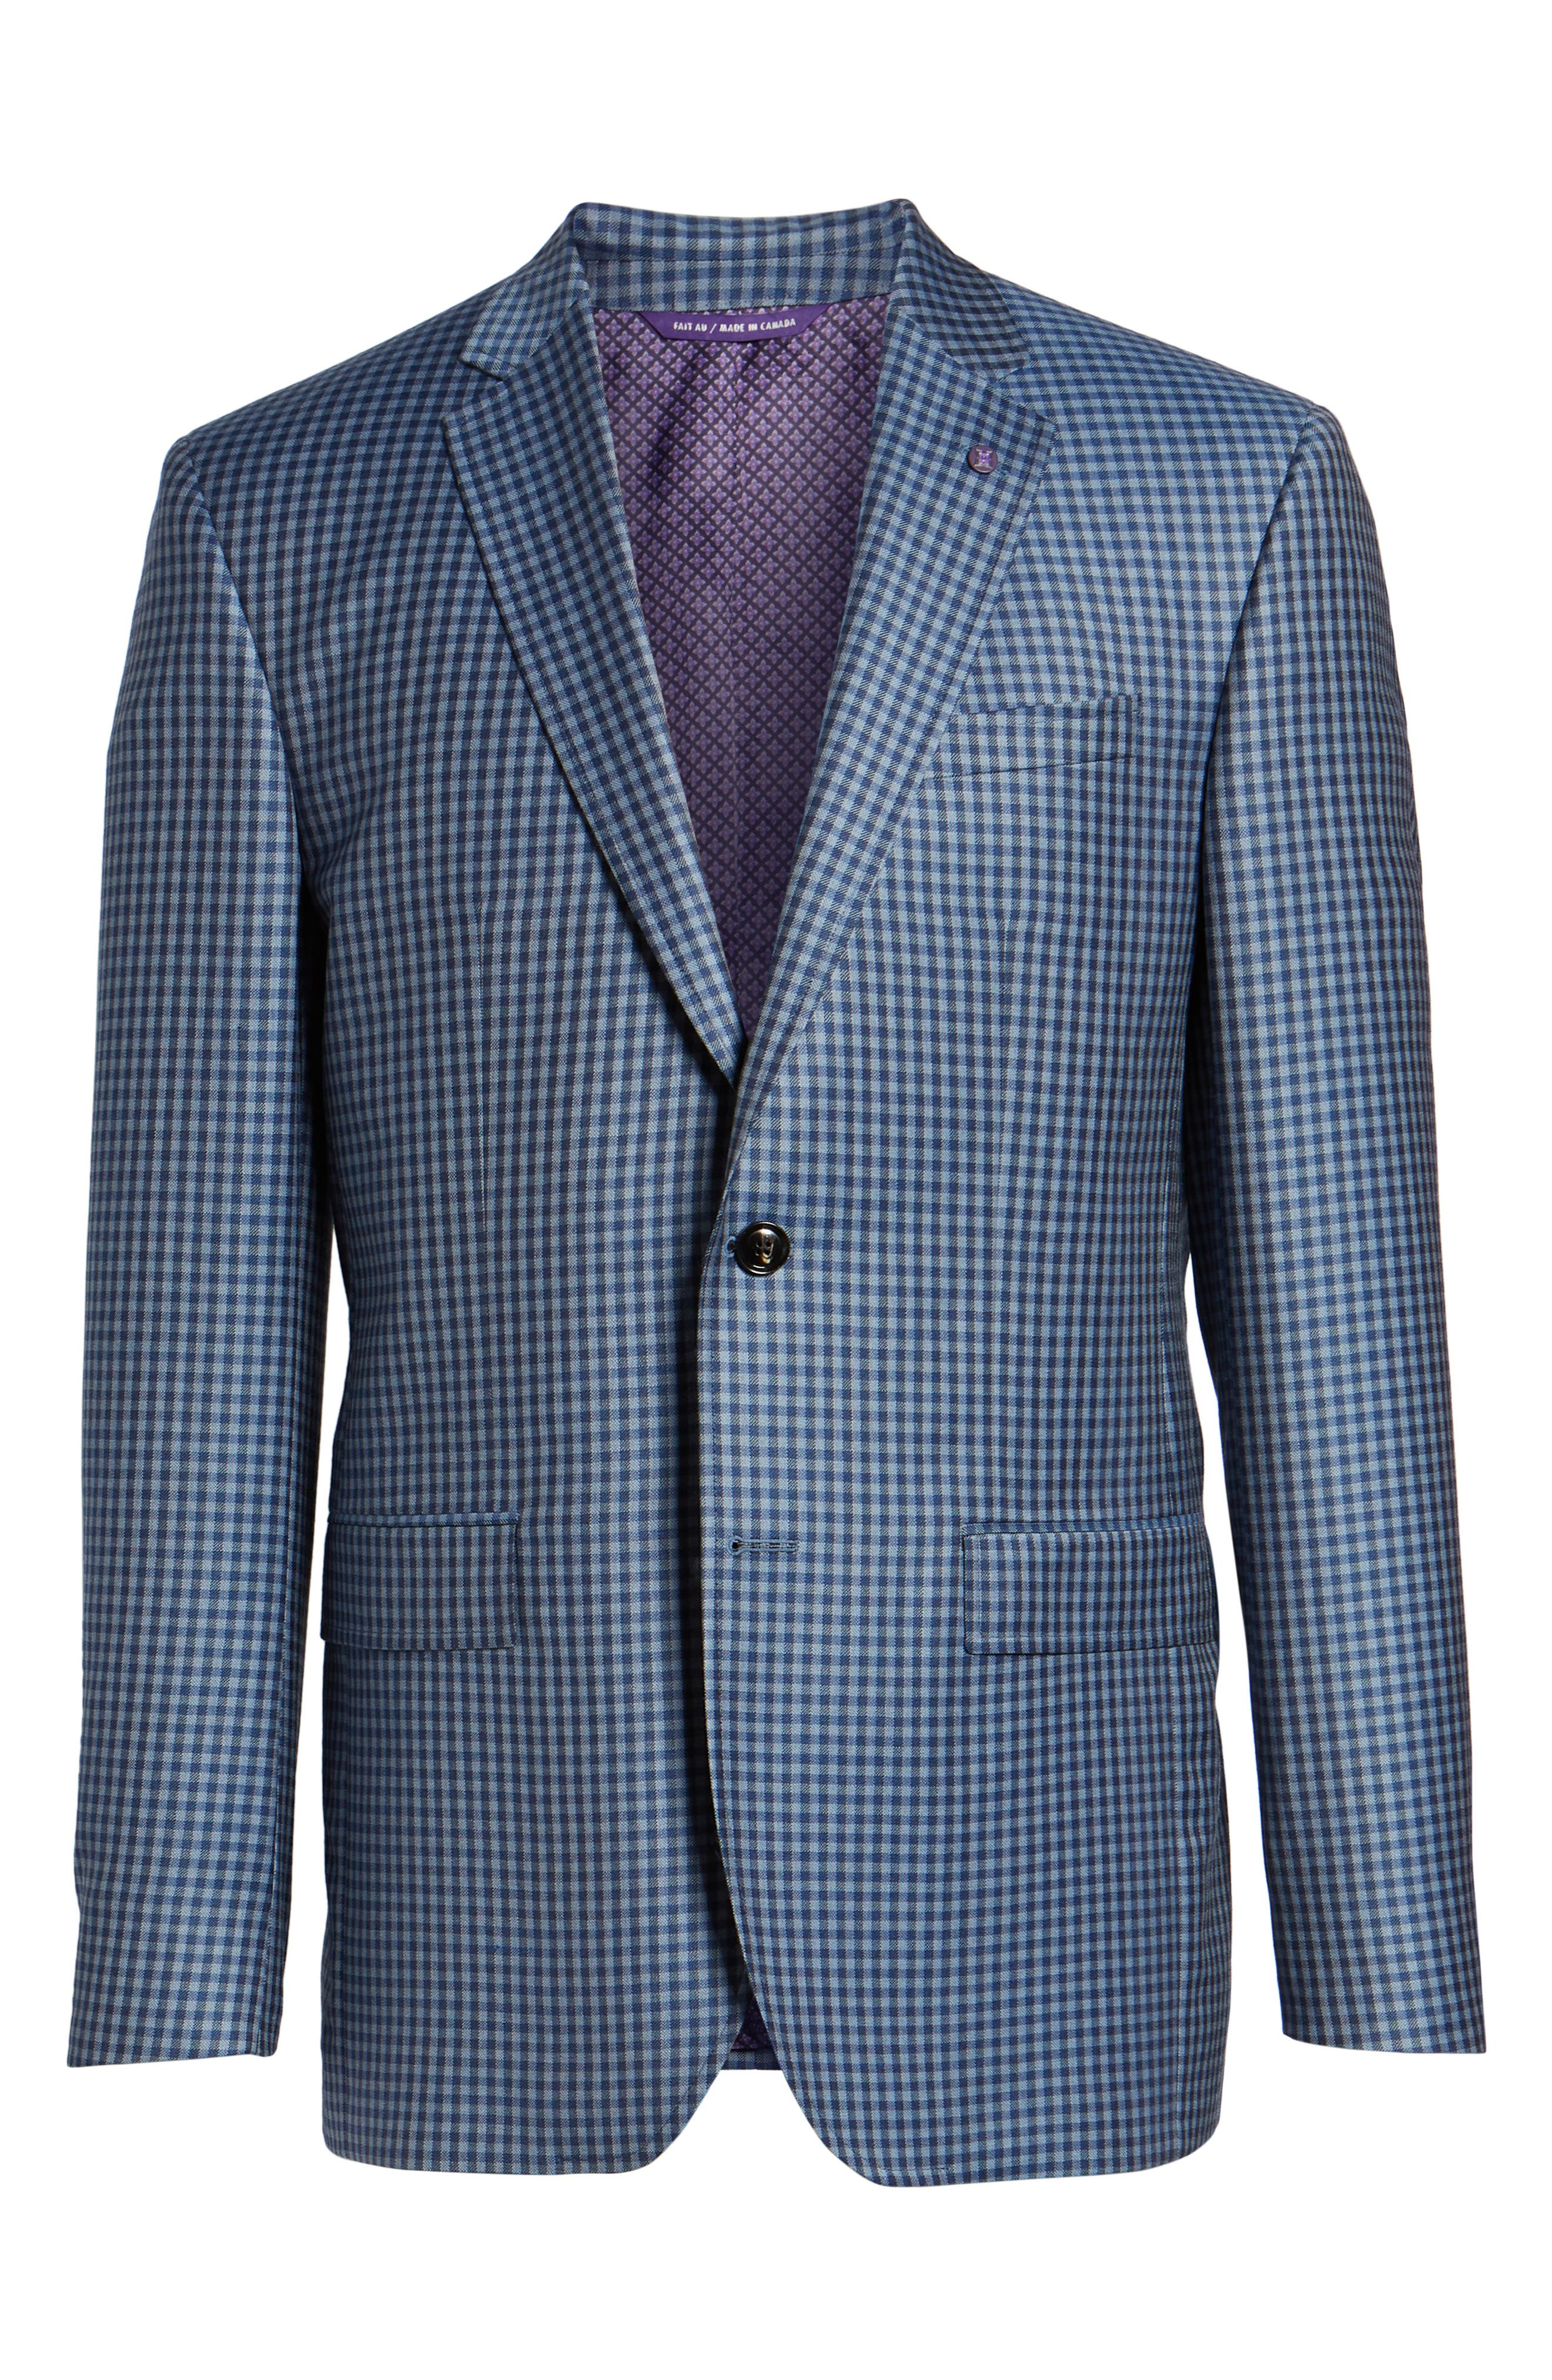 Jay Trim Fit Check Wool Sport Coat,                             Alternate thumbnail 6, color,                             Blue